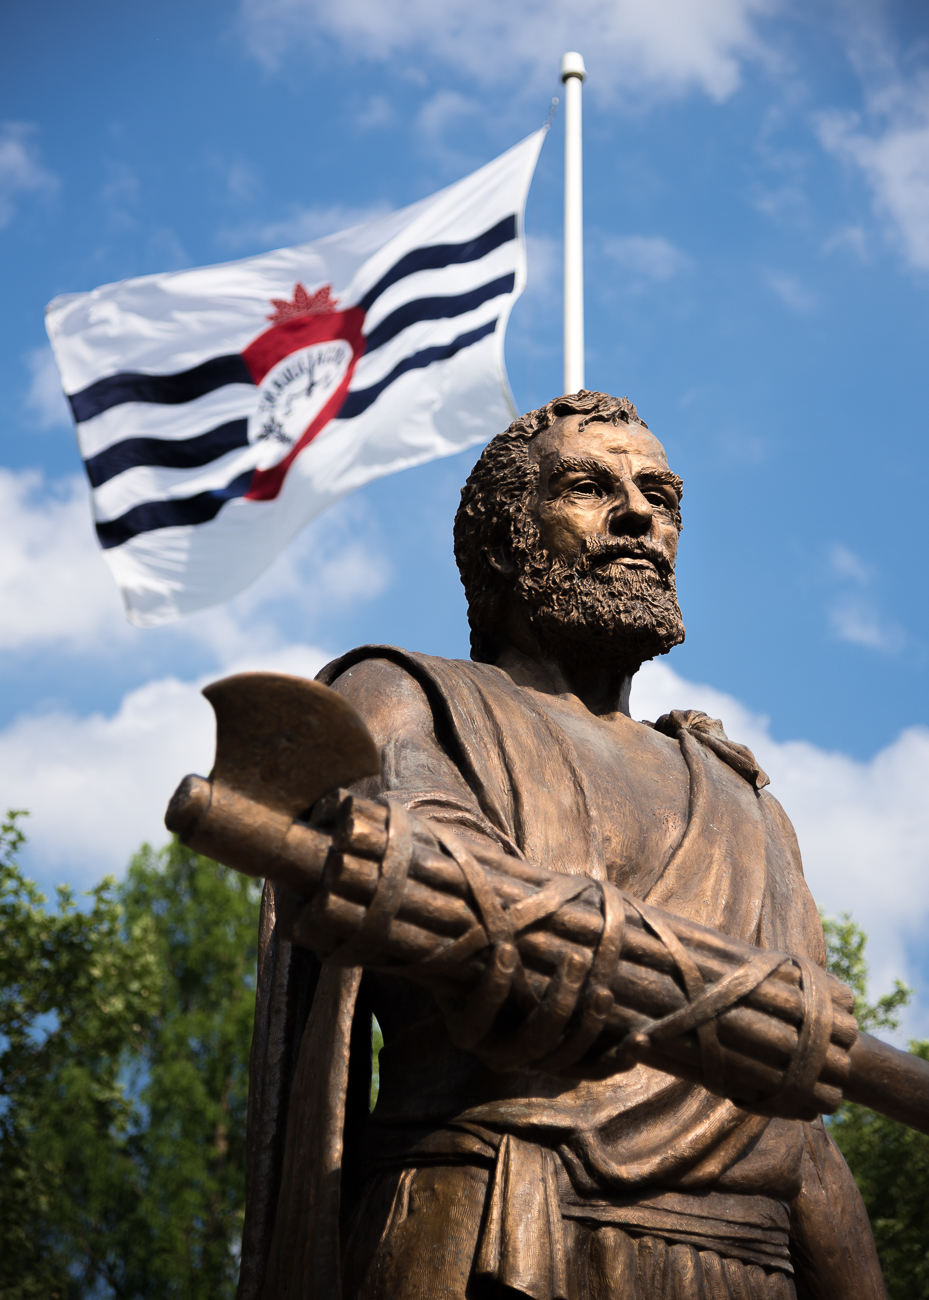 #13 (continued): It's the statue of Cincinnatus himself in Bicentennial Commons! Our city is named after the Society of Cincinnati, which is named for the Roman emperor Cincinnatus. Thanks for playing! / Image: Phil Armstrong, Cincinnati Refined // Published: 4.24.19